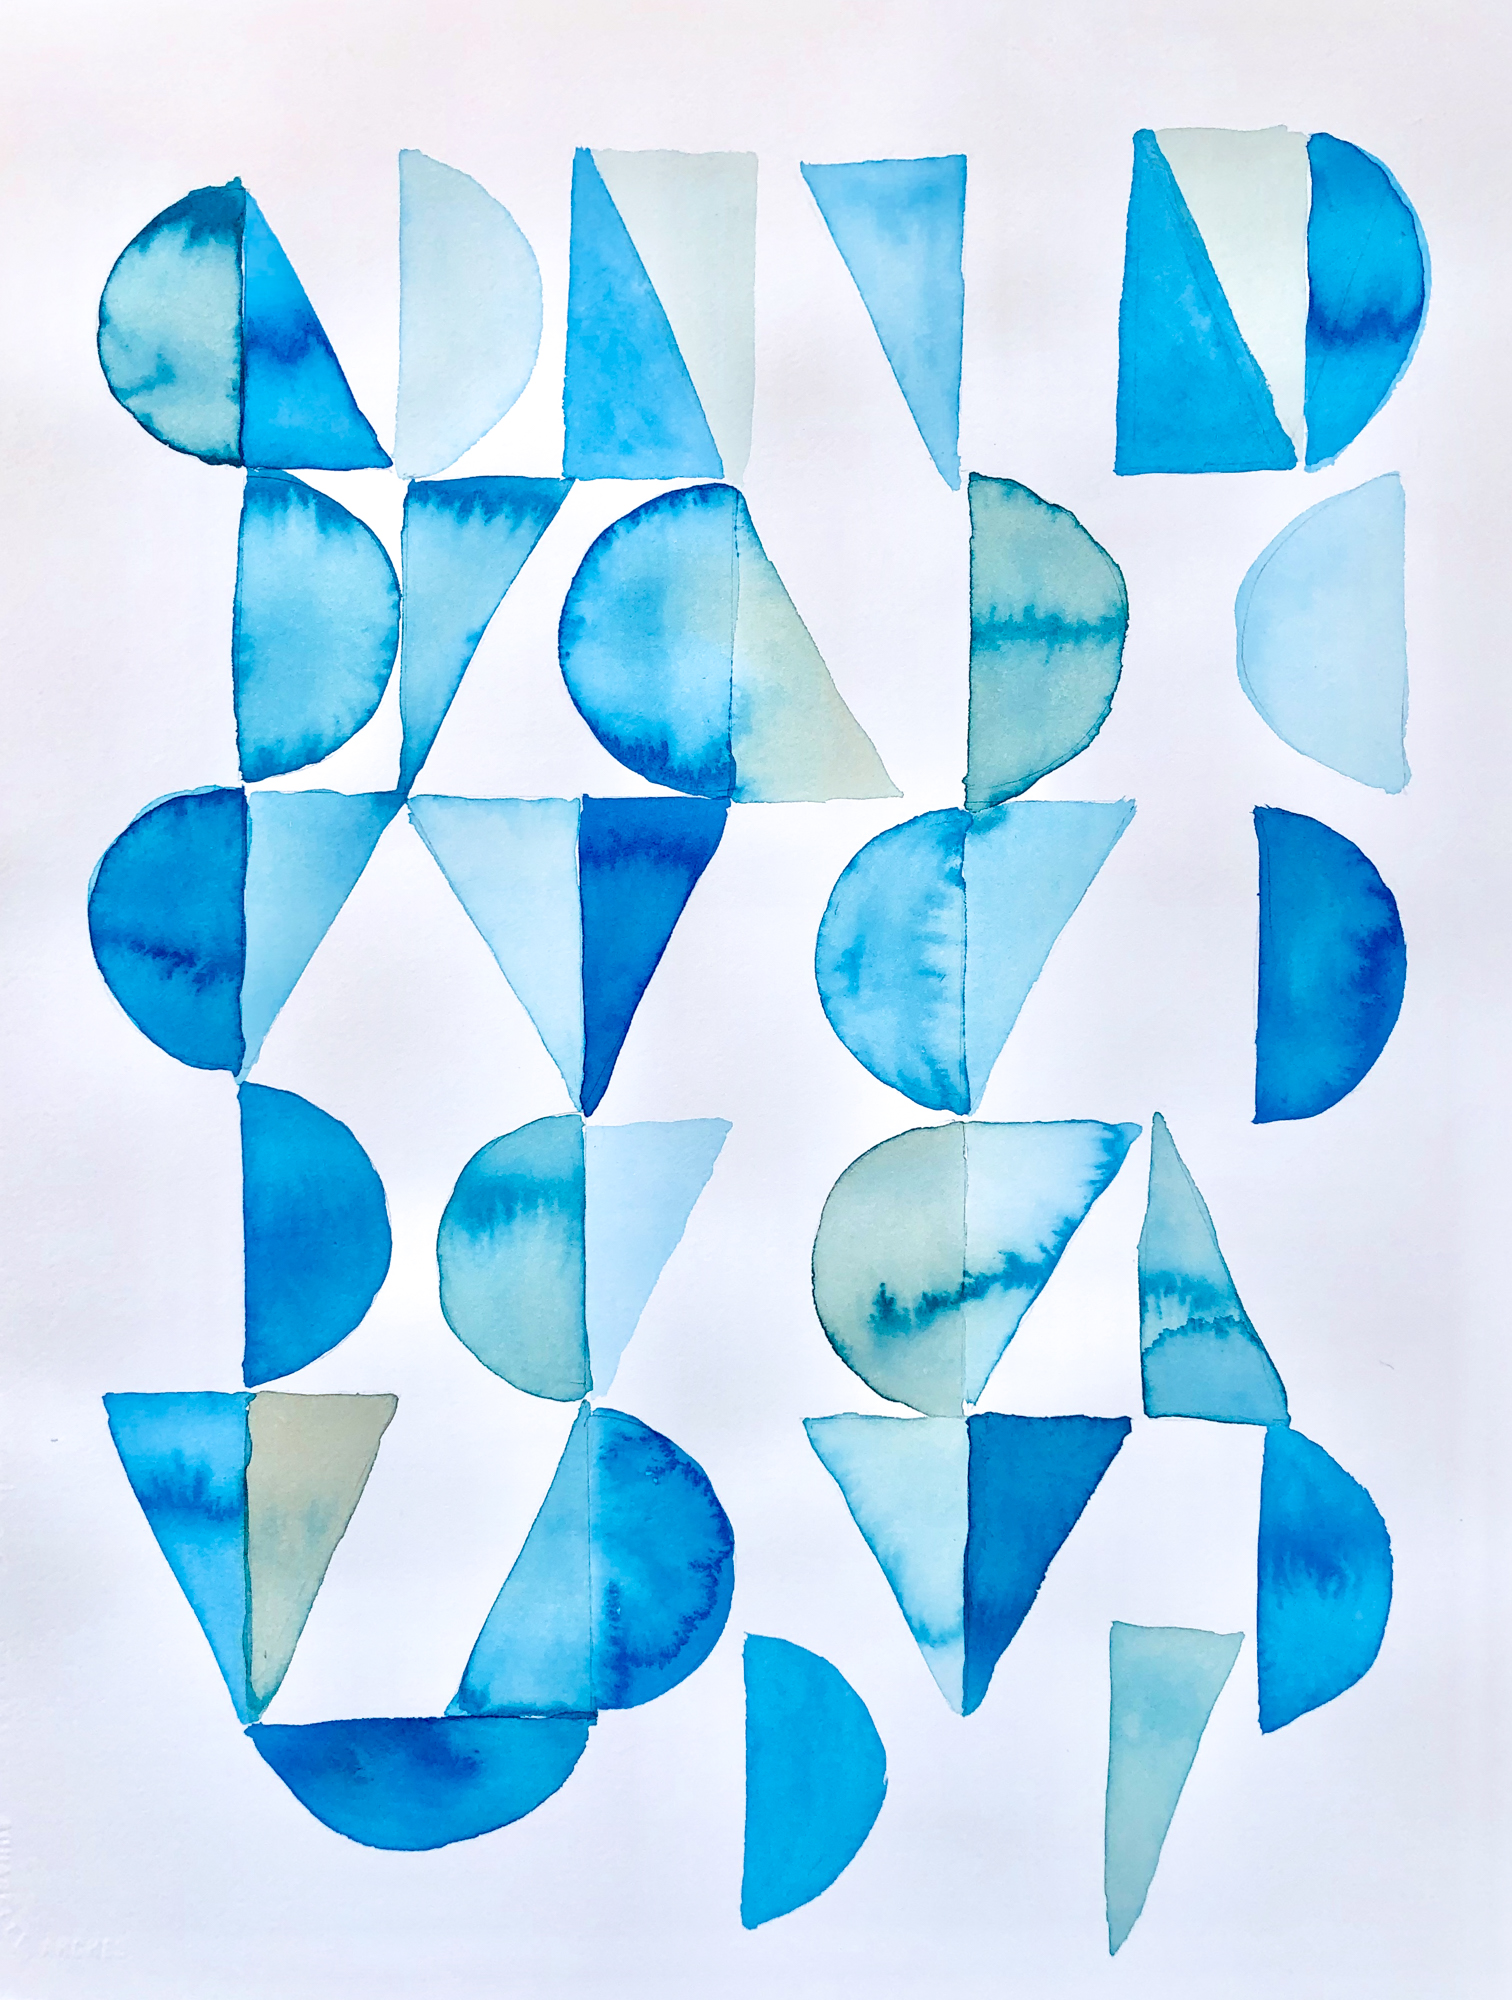 Blue Geometry 5, 2019, mixed media on paper, 16 x 20 in, $3,000